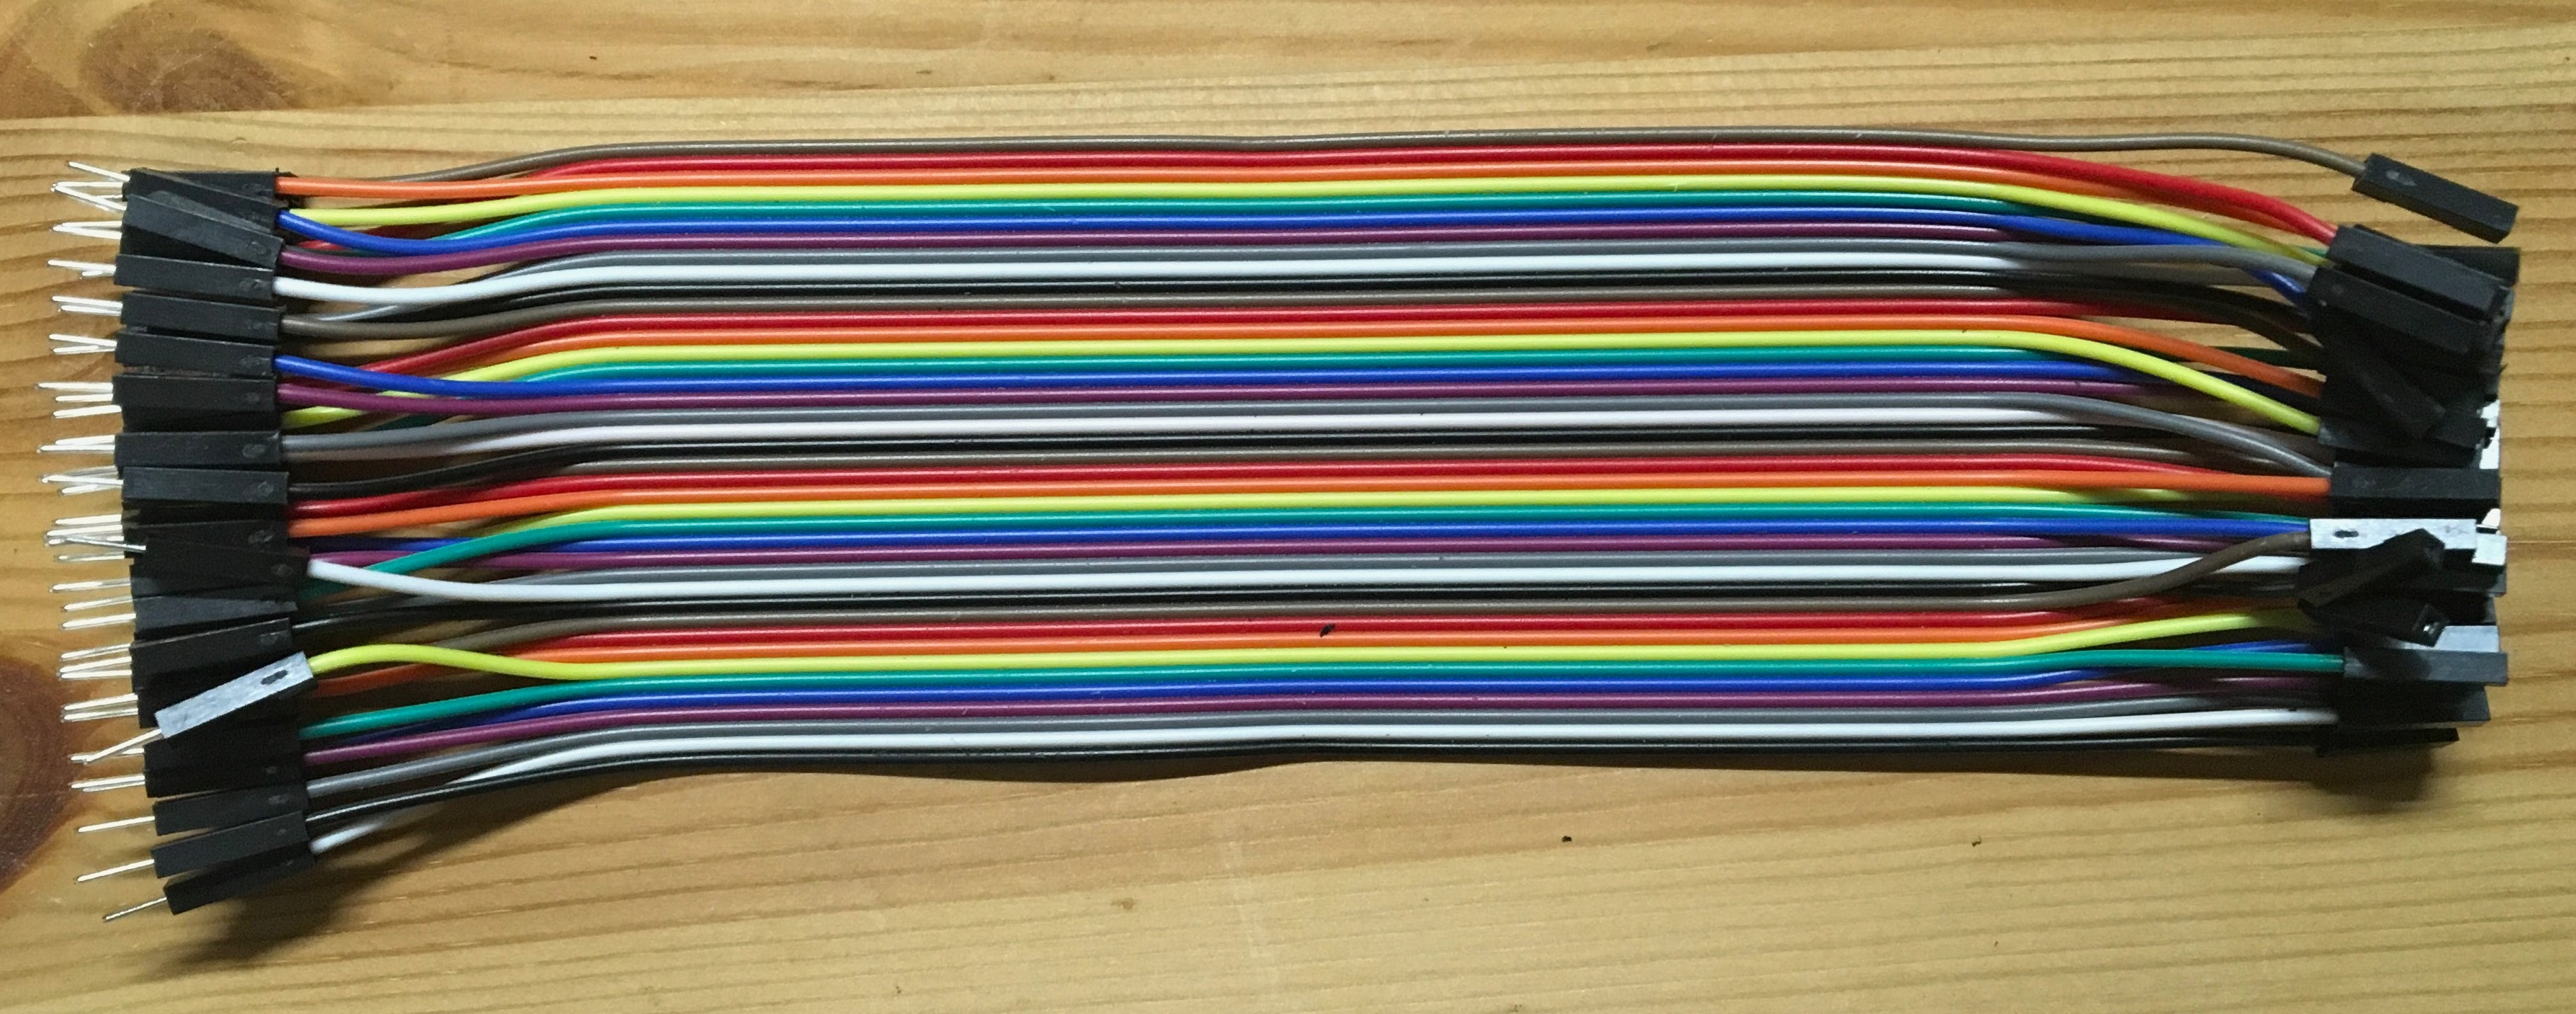 120pc DuPont Jumper Wire multicolour kit for Breadboard/Prototyping - Server On The Move